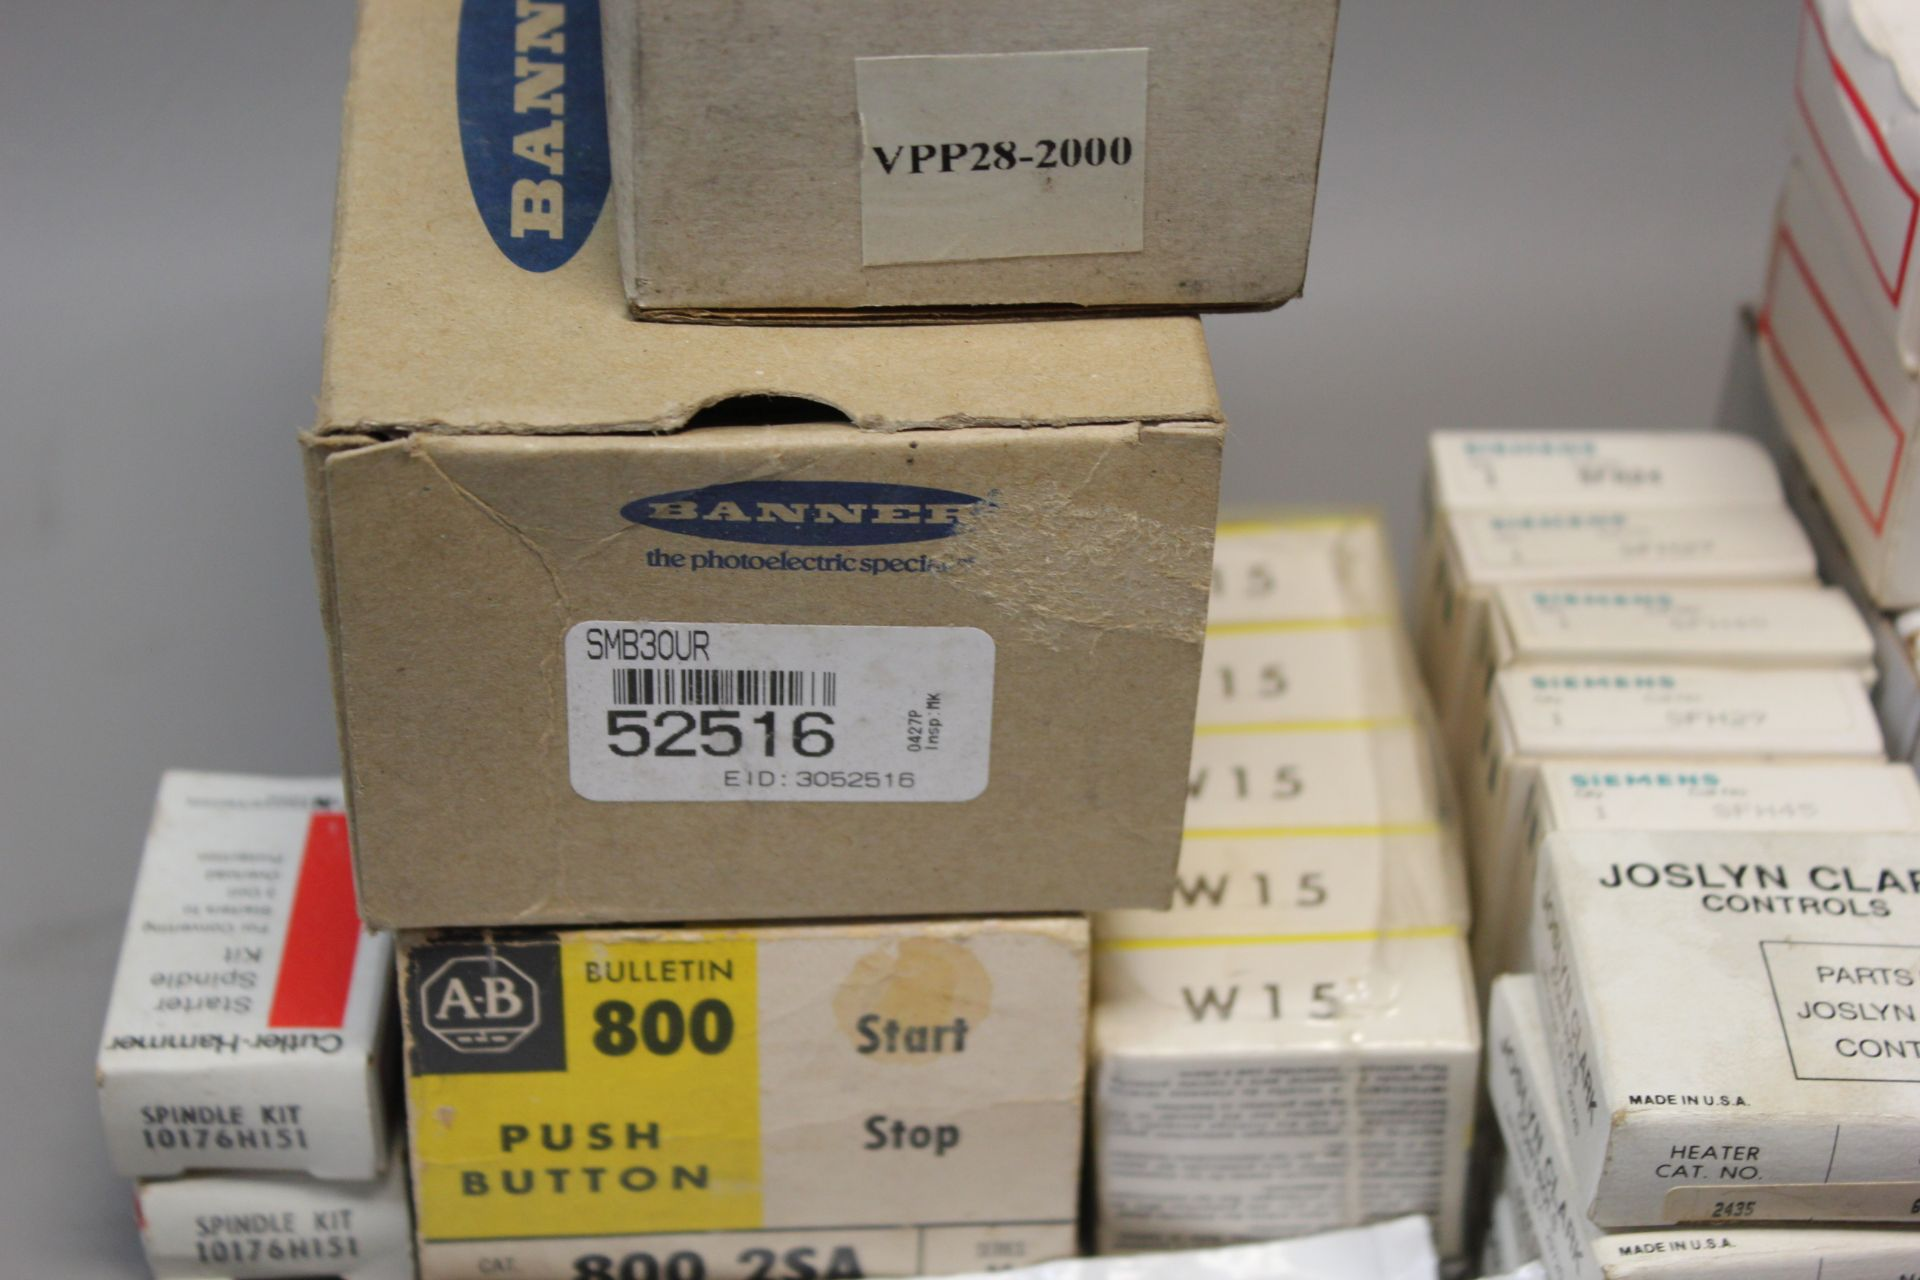 LOT OF NEW MRO PARTS - A/B, EATON, ETC - Image 3 of 5